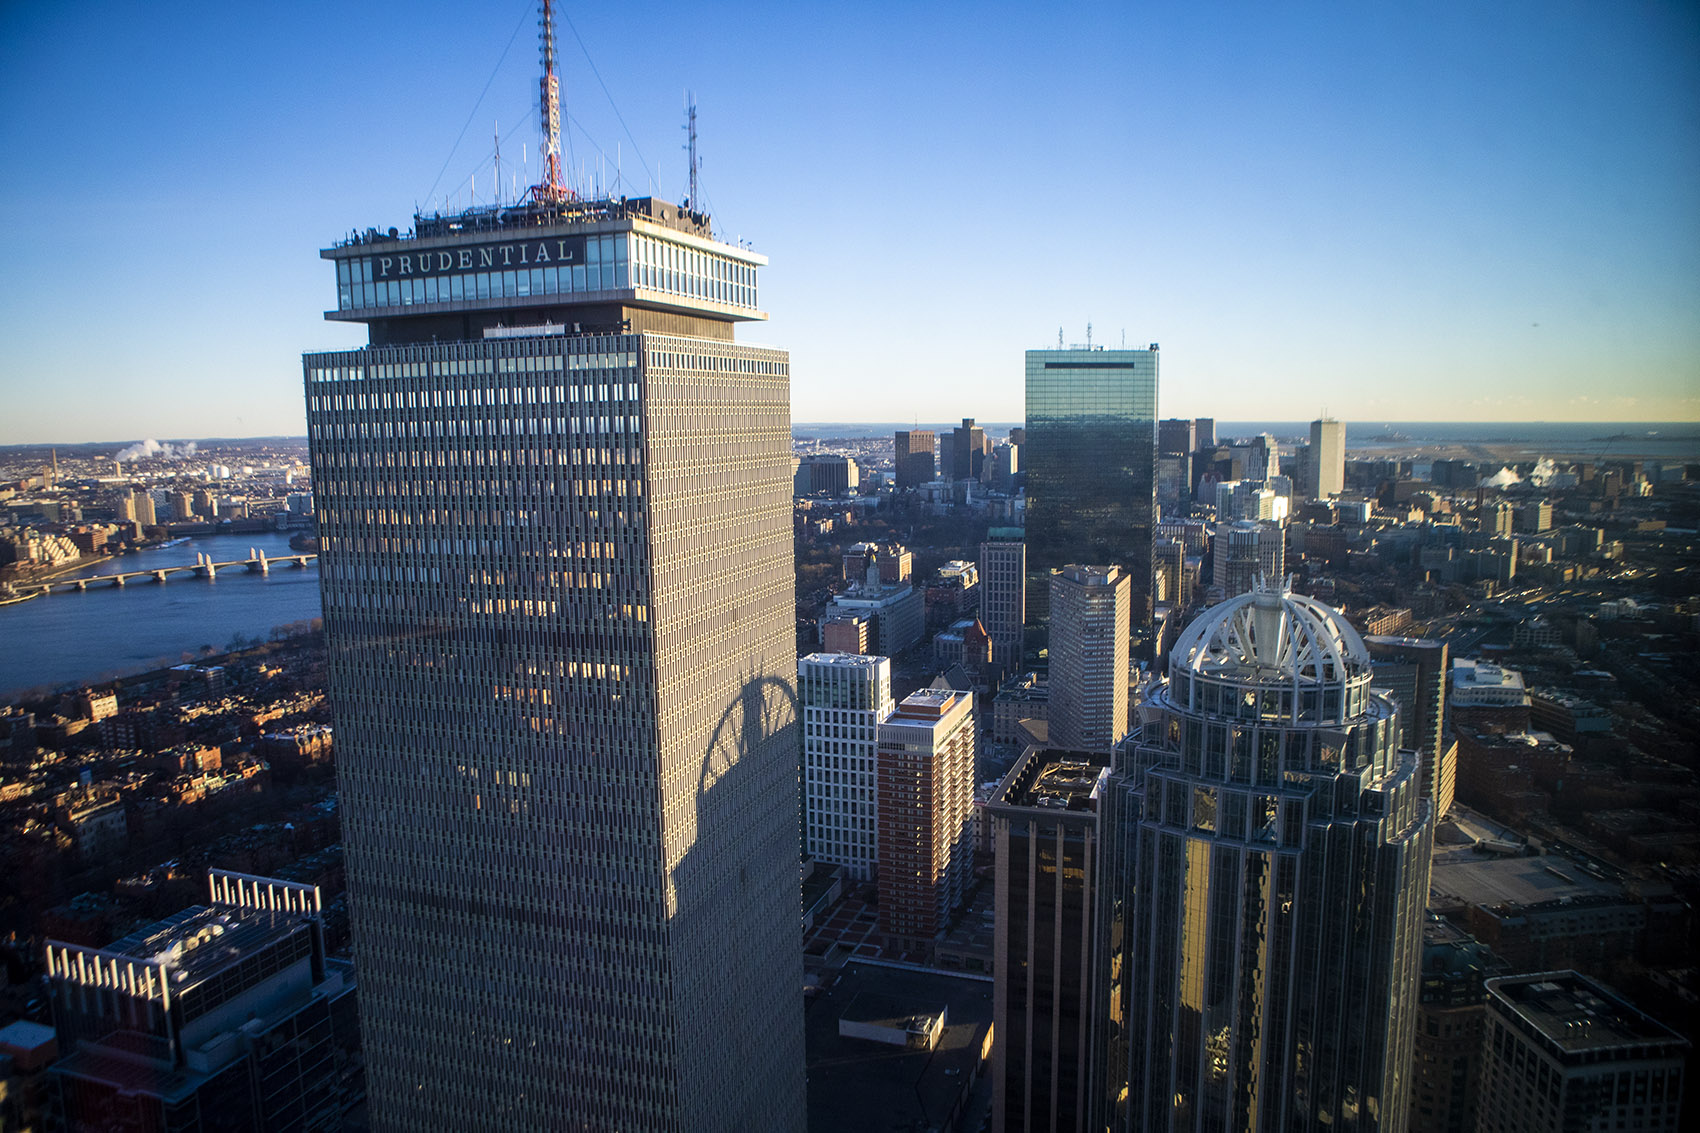 The two tallest buildings in Boston, 200 Clarendon Street (formerly known as the John Hancock Tower), right, and the Prudential Tower are seen from One Dalton. (Jesse Costa/WBUR)